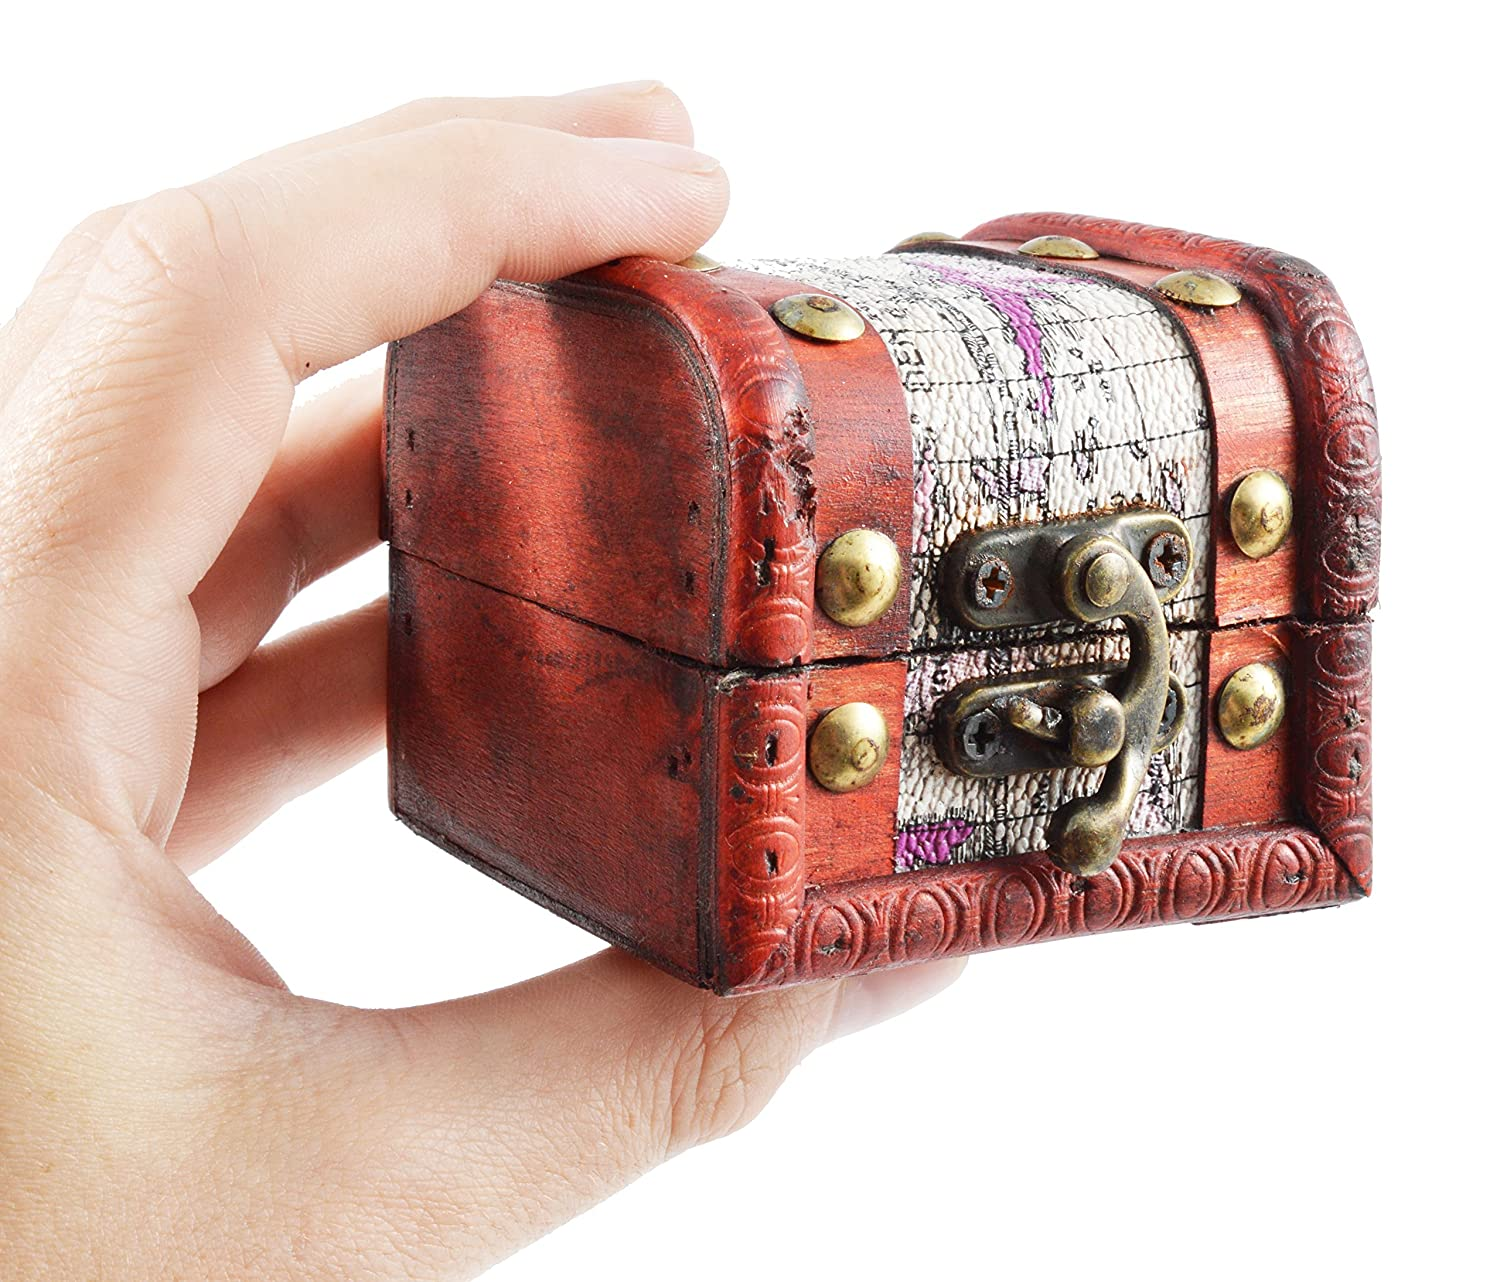 Crammed with Gemstones Fossil Gift Shop Pirates Treasure Chest Pack of 1 Pearls and Jewels!